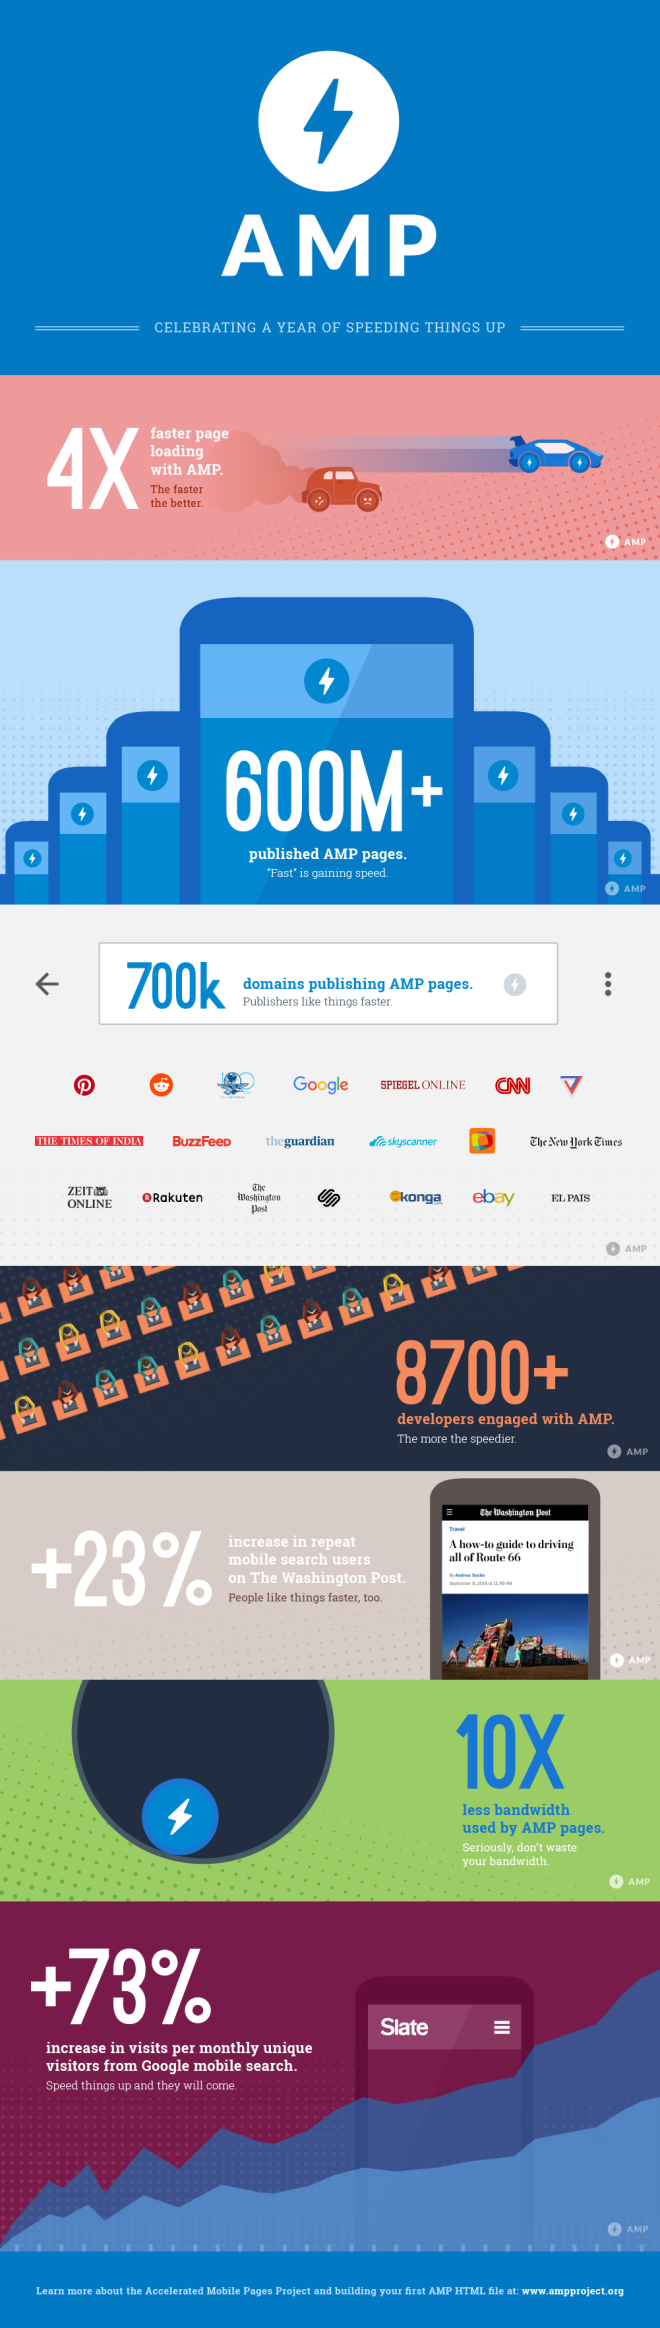 AMP WordPress Infographic - Posted by David Besbris, VP Google Search, AMP Project Lead at Google